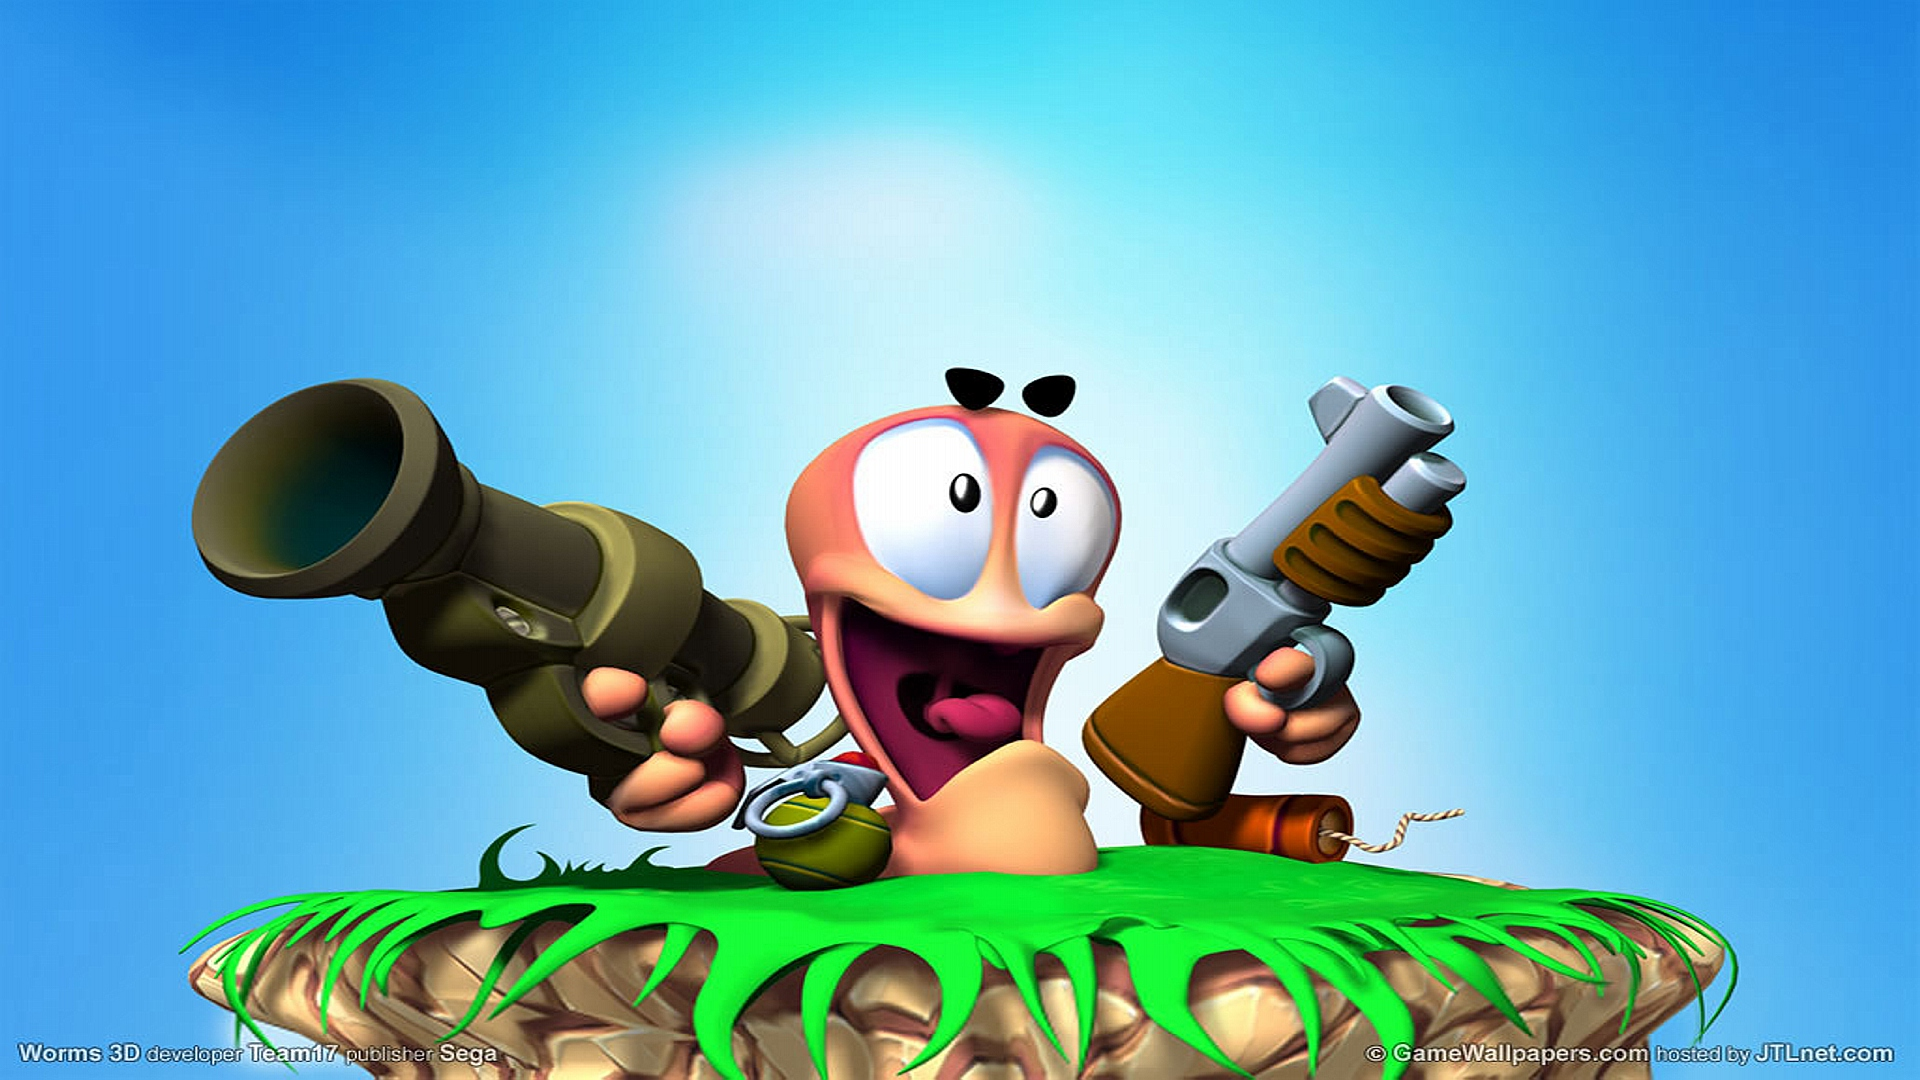 HD Wallpapers Worms Sega Blue Game